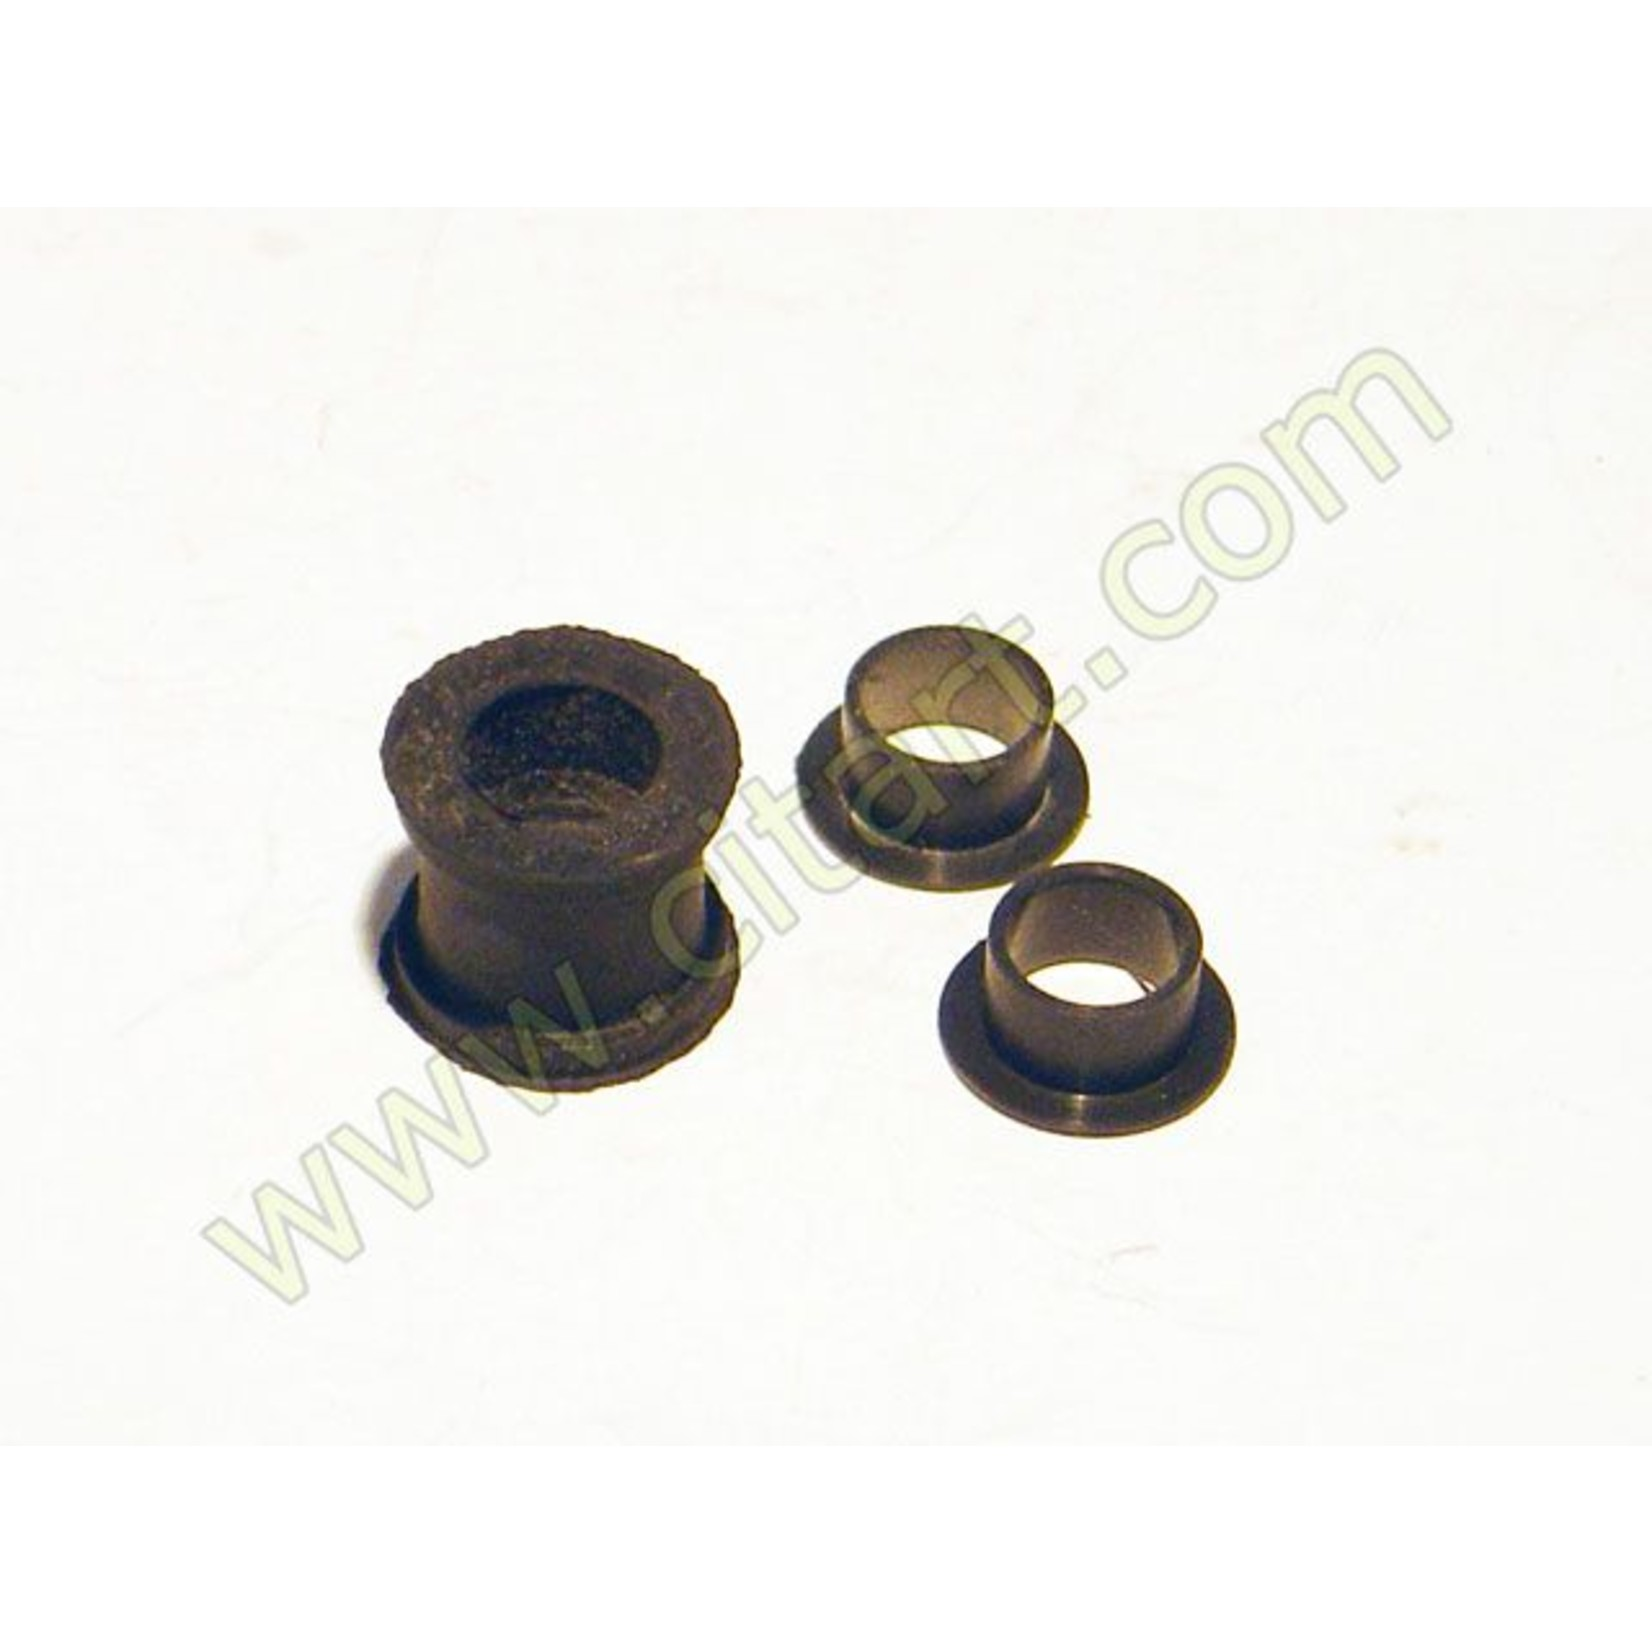 Rubber bush kit gear change control Nr Org: 5413012